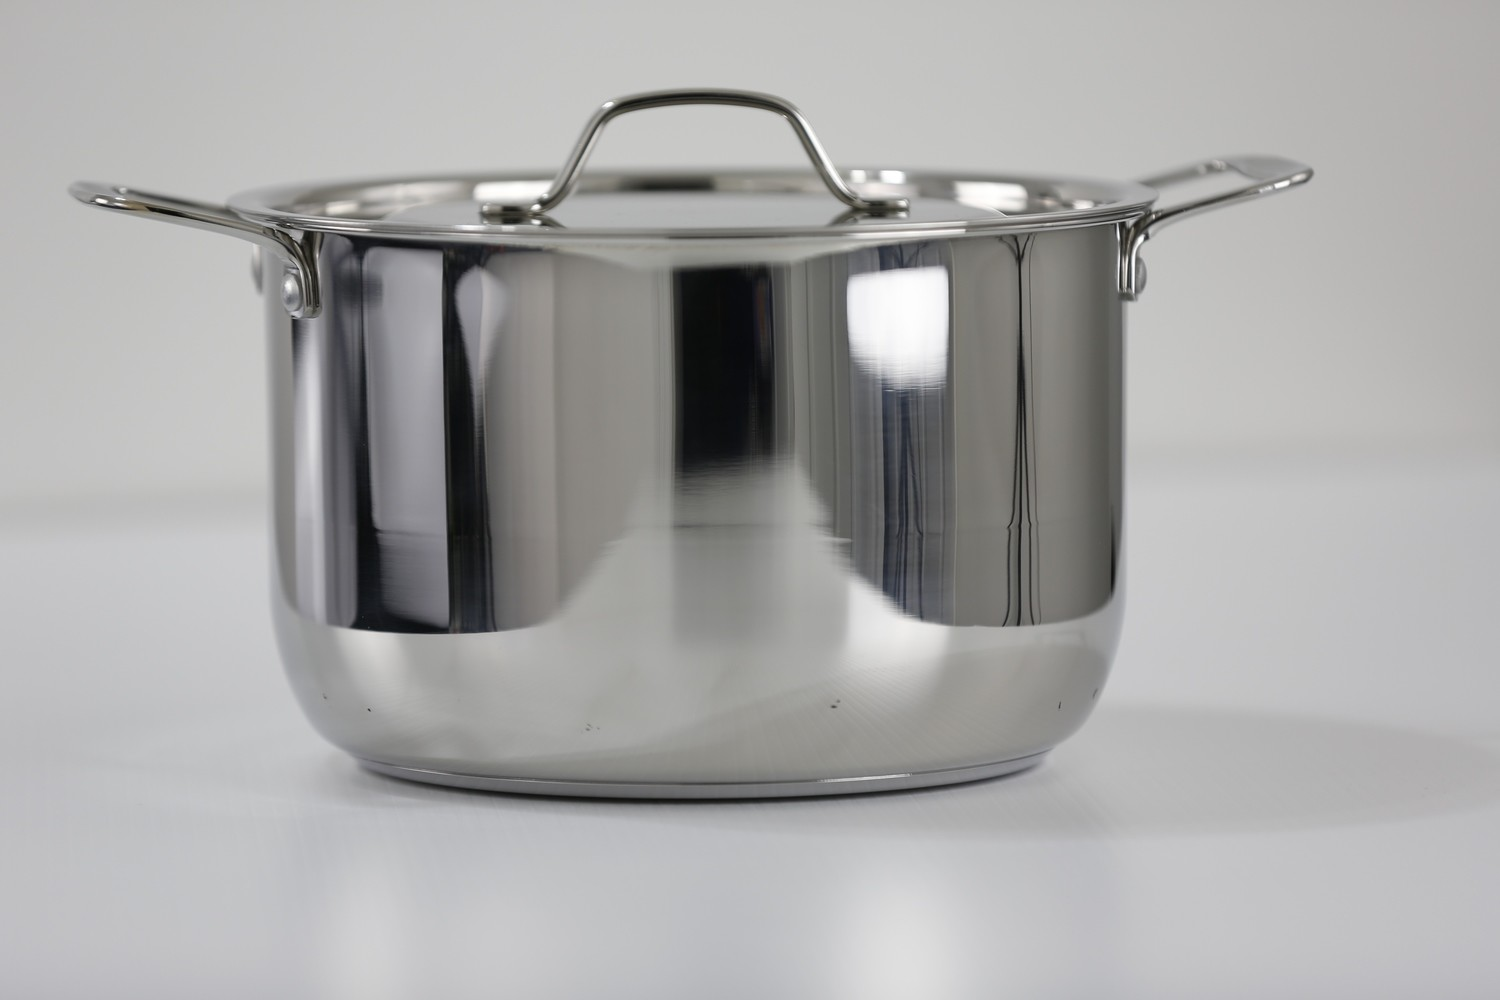 SS1- 5.18 Qt. Stainless Steel tri-ply bottom induction Sauce Pot with cover